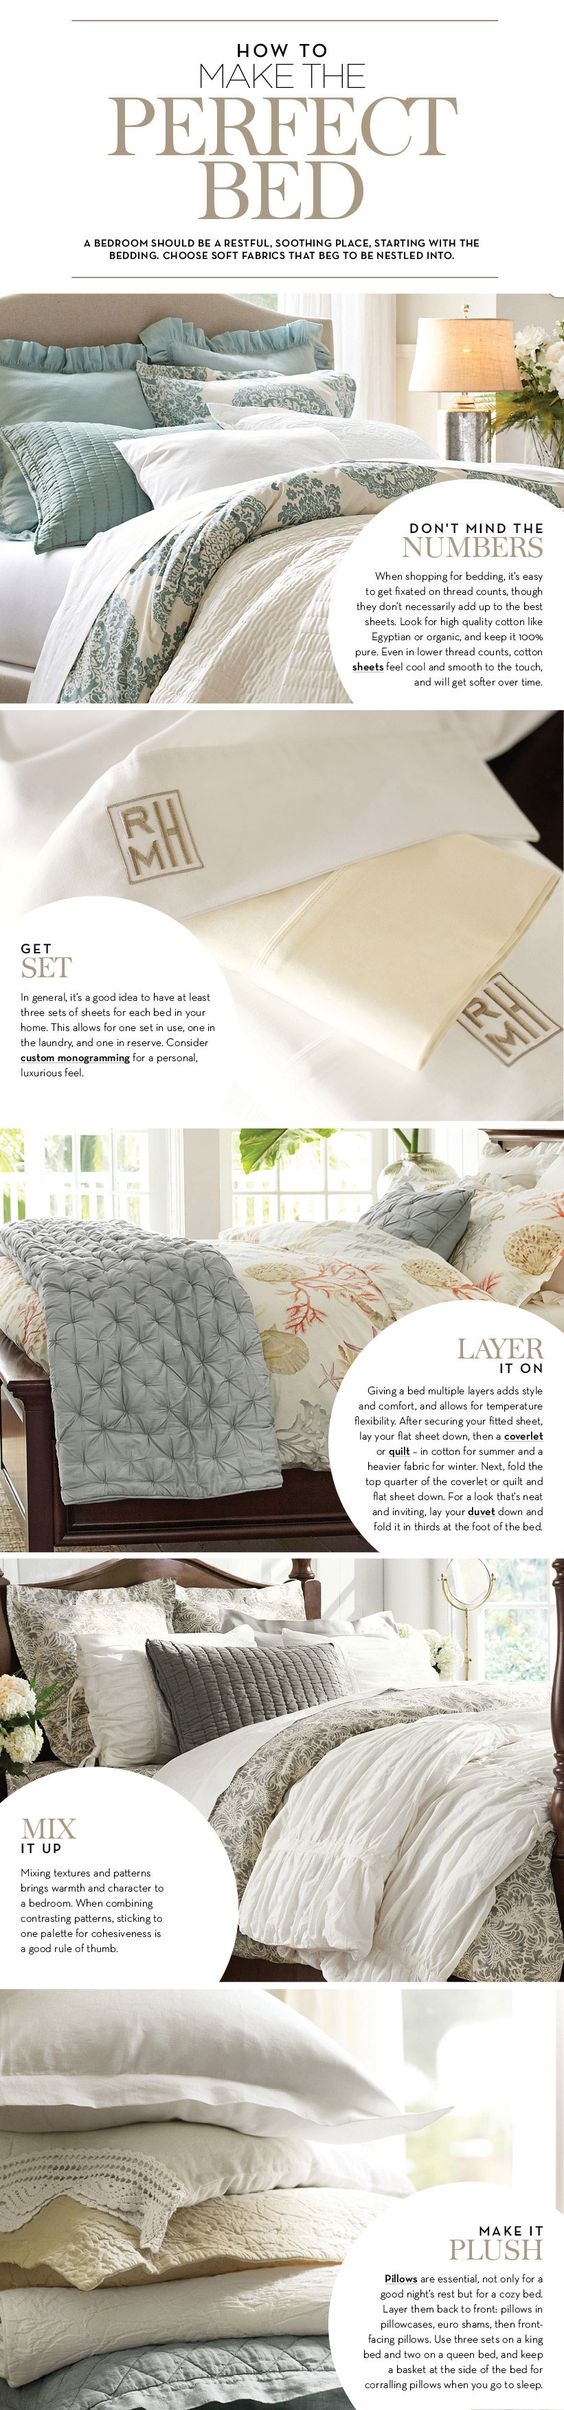 How to Make the Perfect Bed | Pottery Barn. Tip: it's a good idea to have 3 sets of sheets for every bed in your house.: